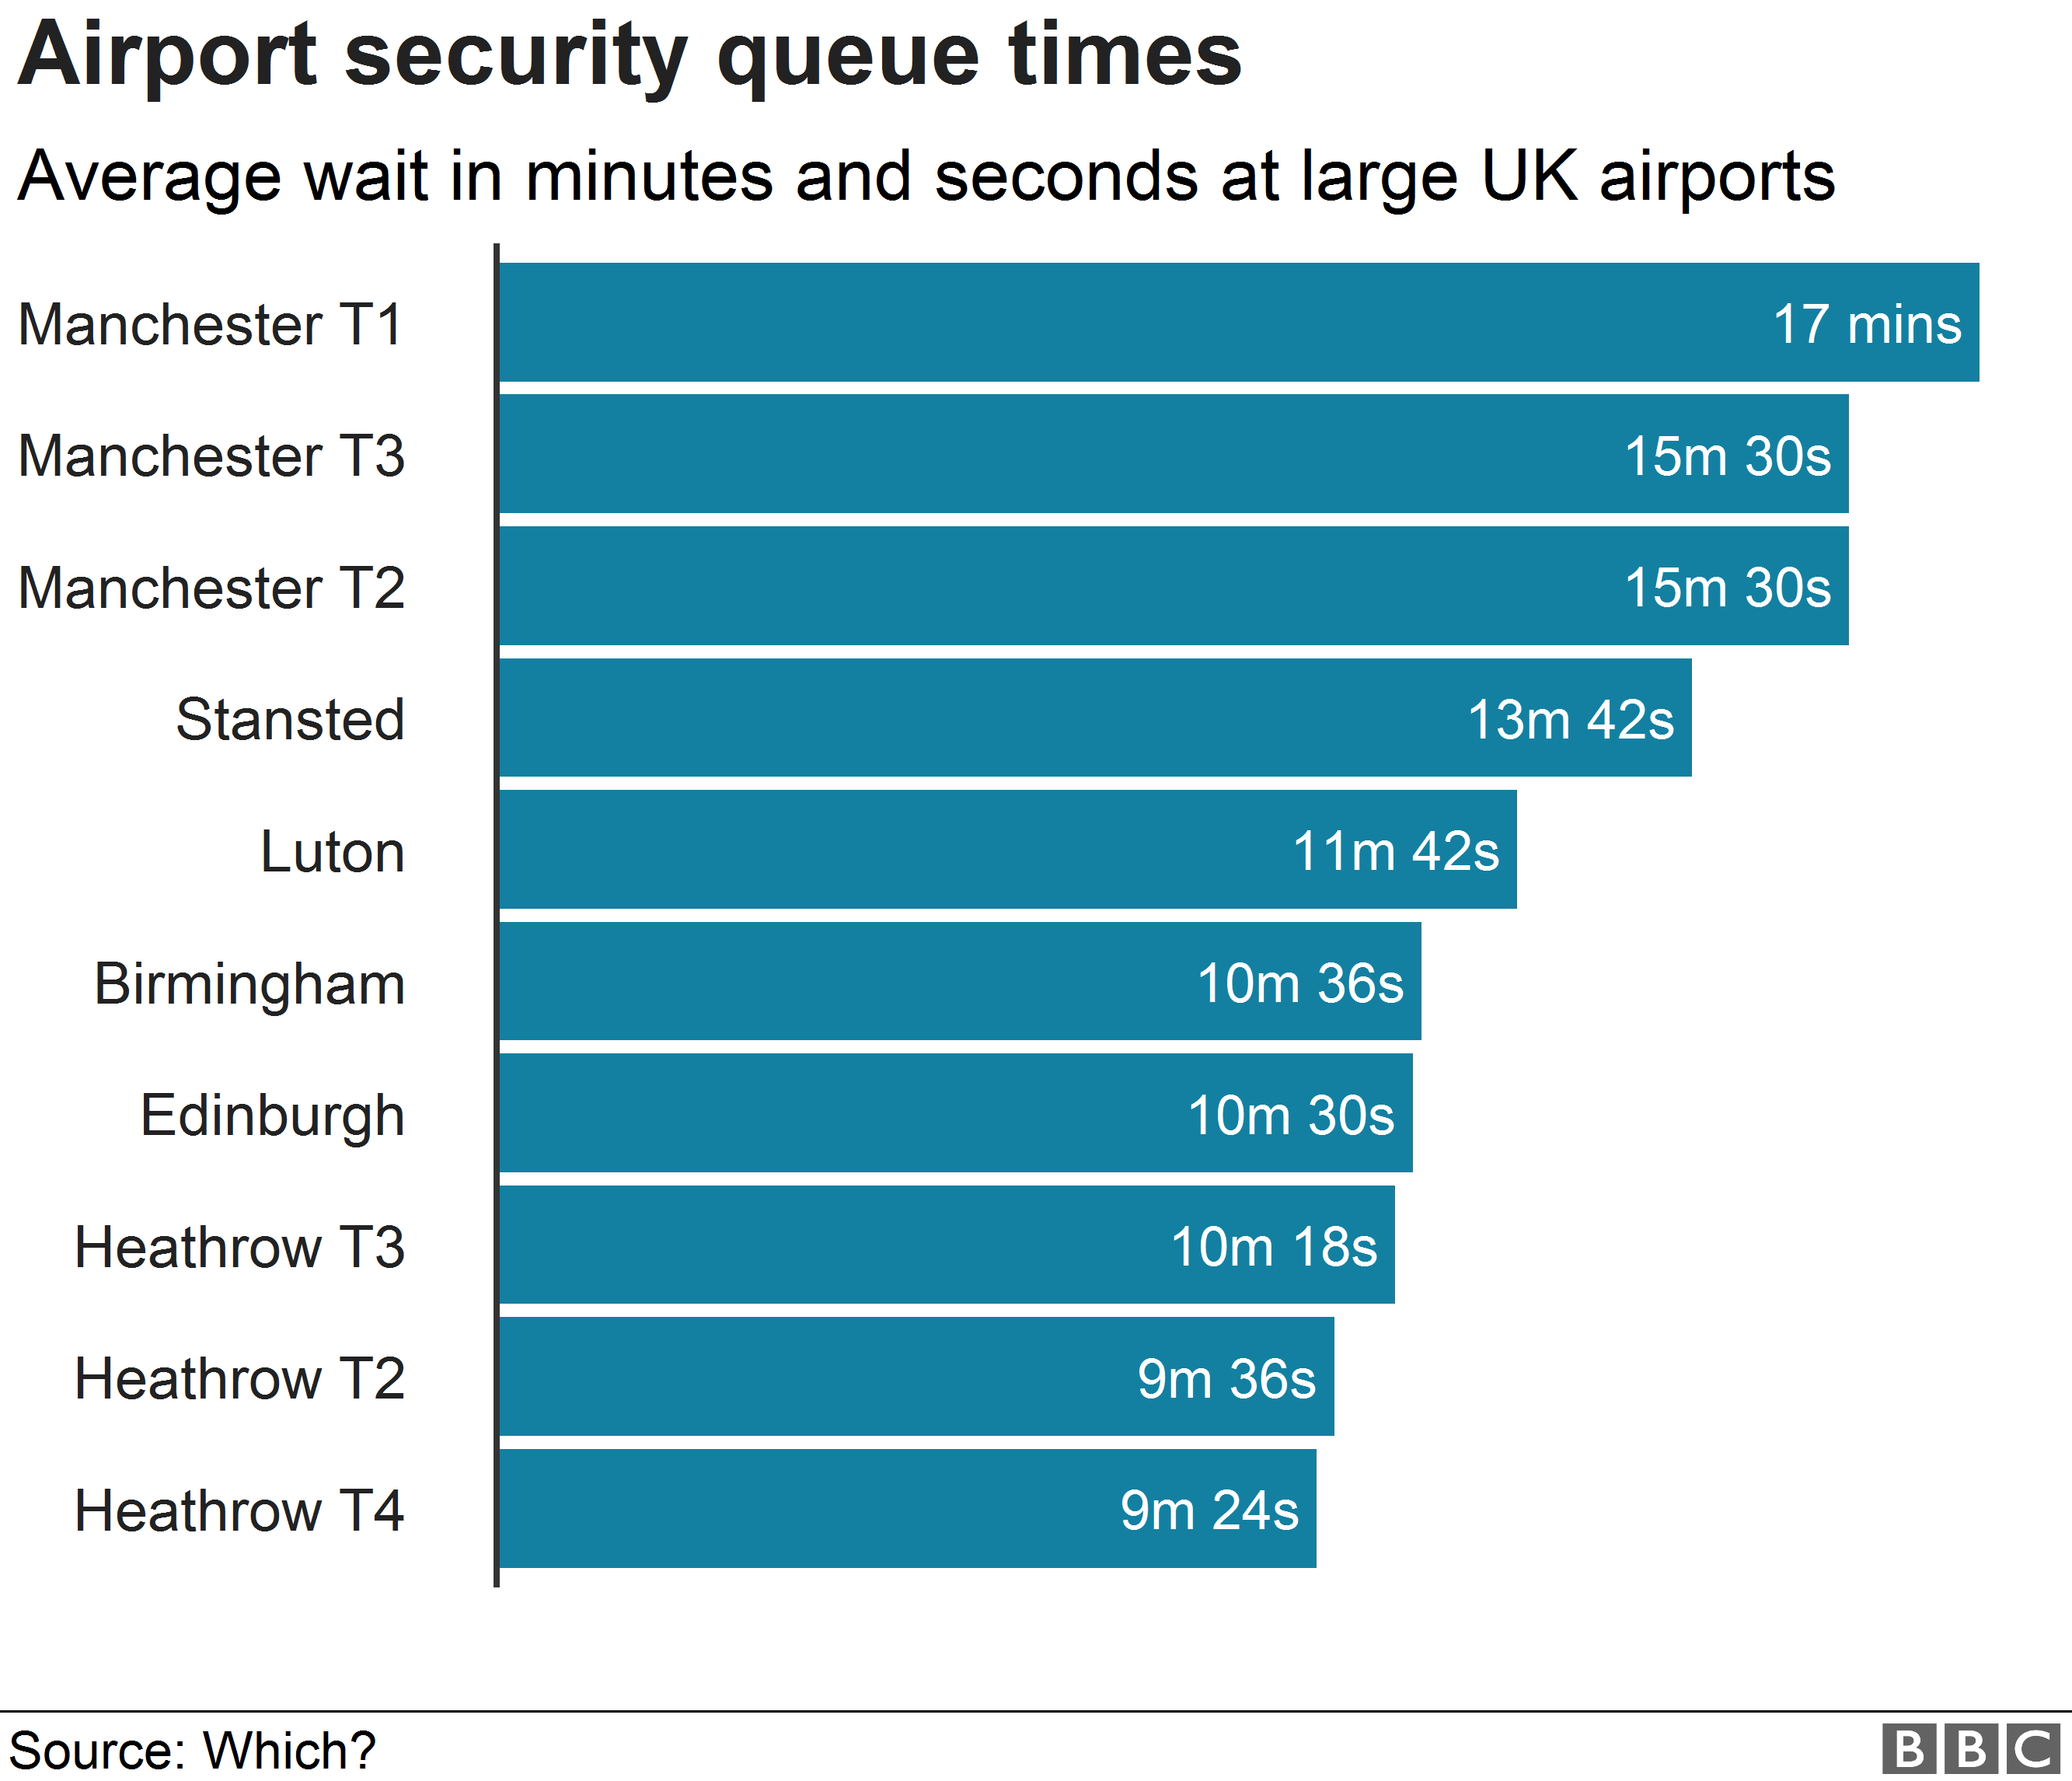 Chart showing wait times at large airports